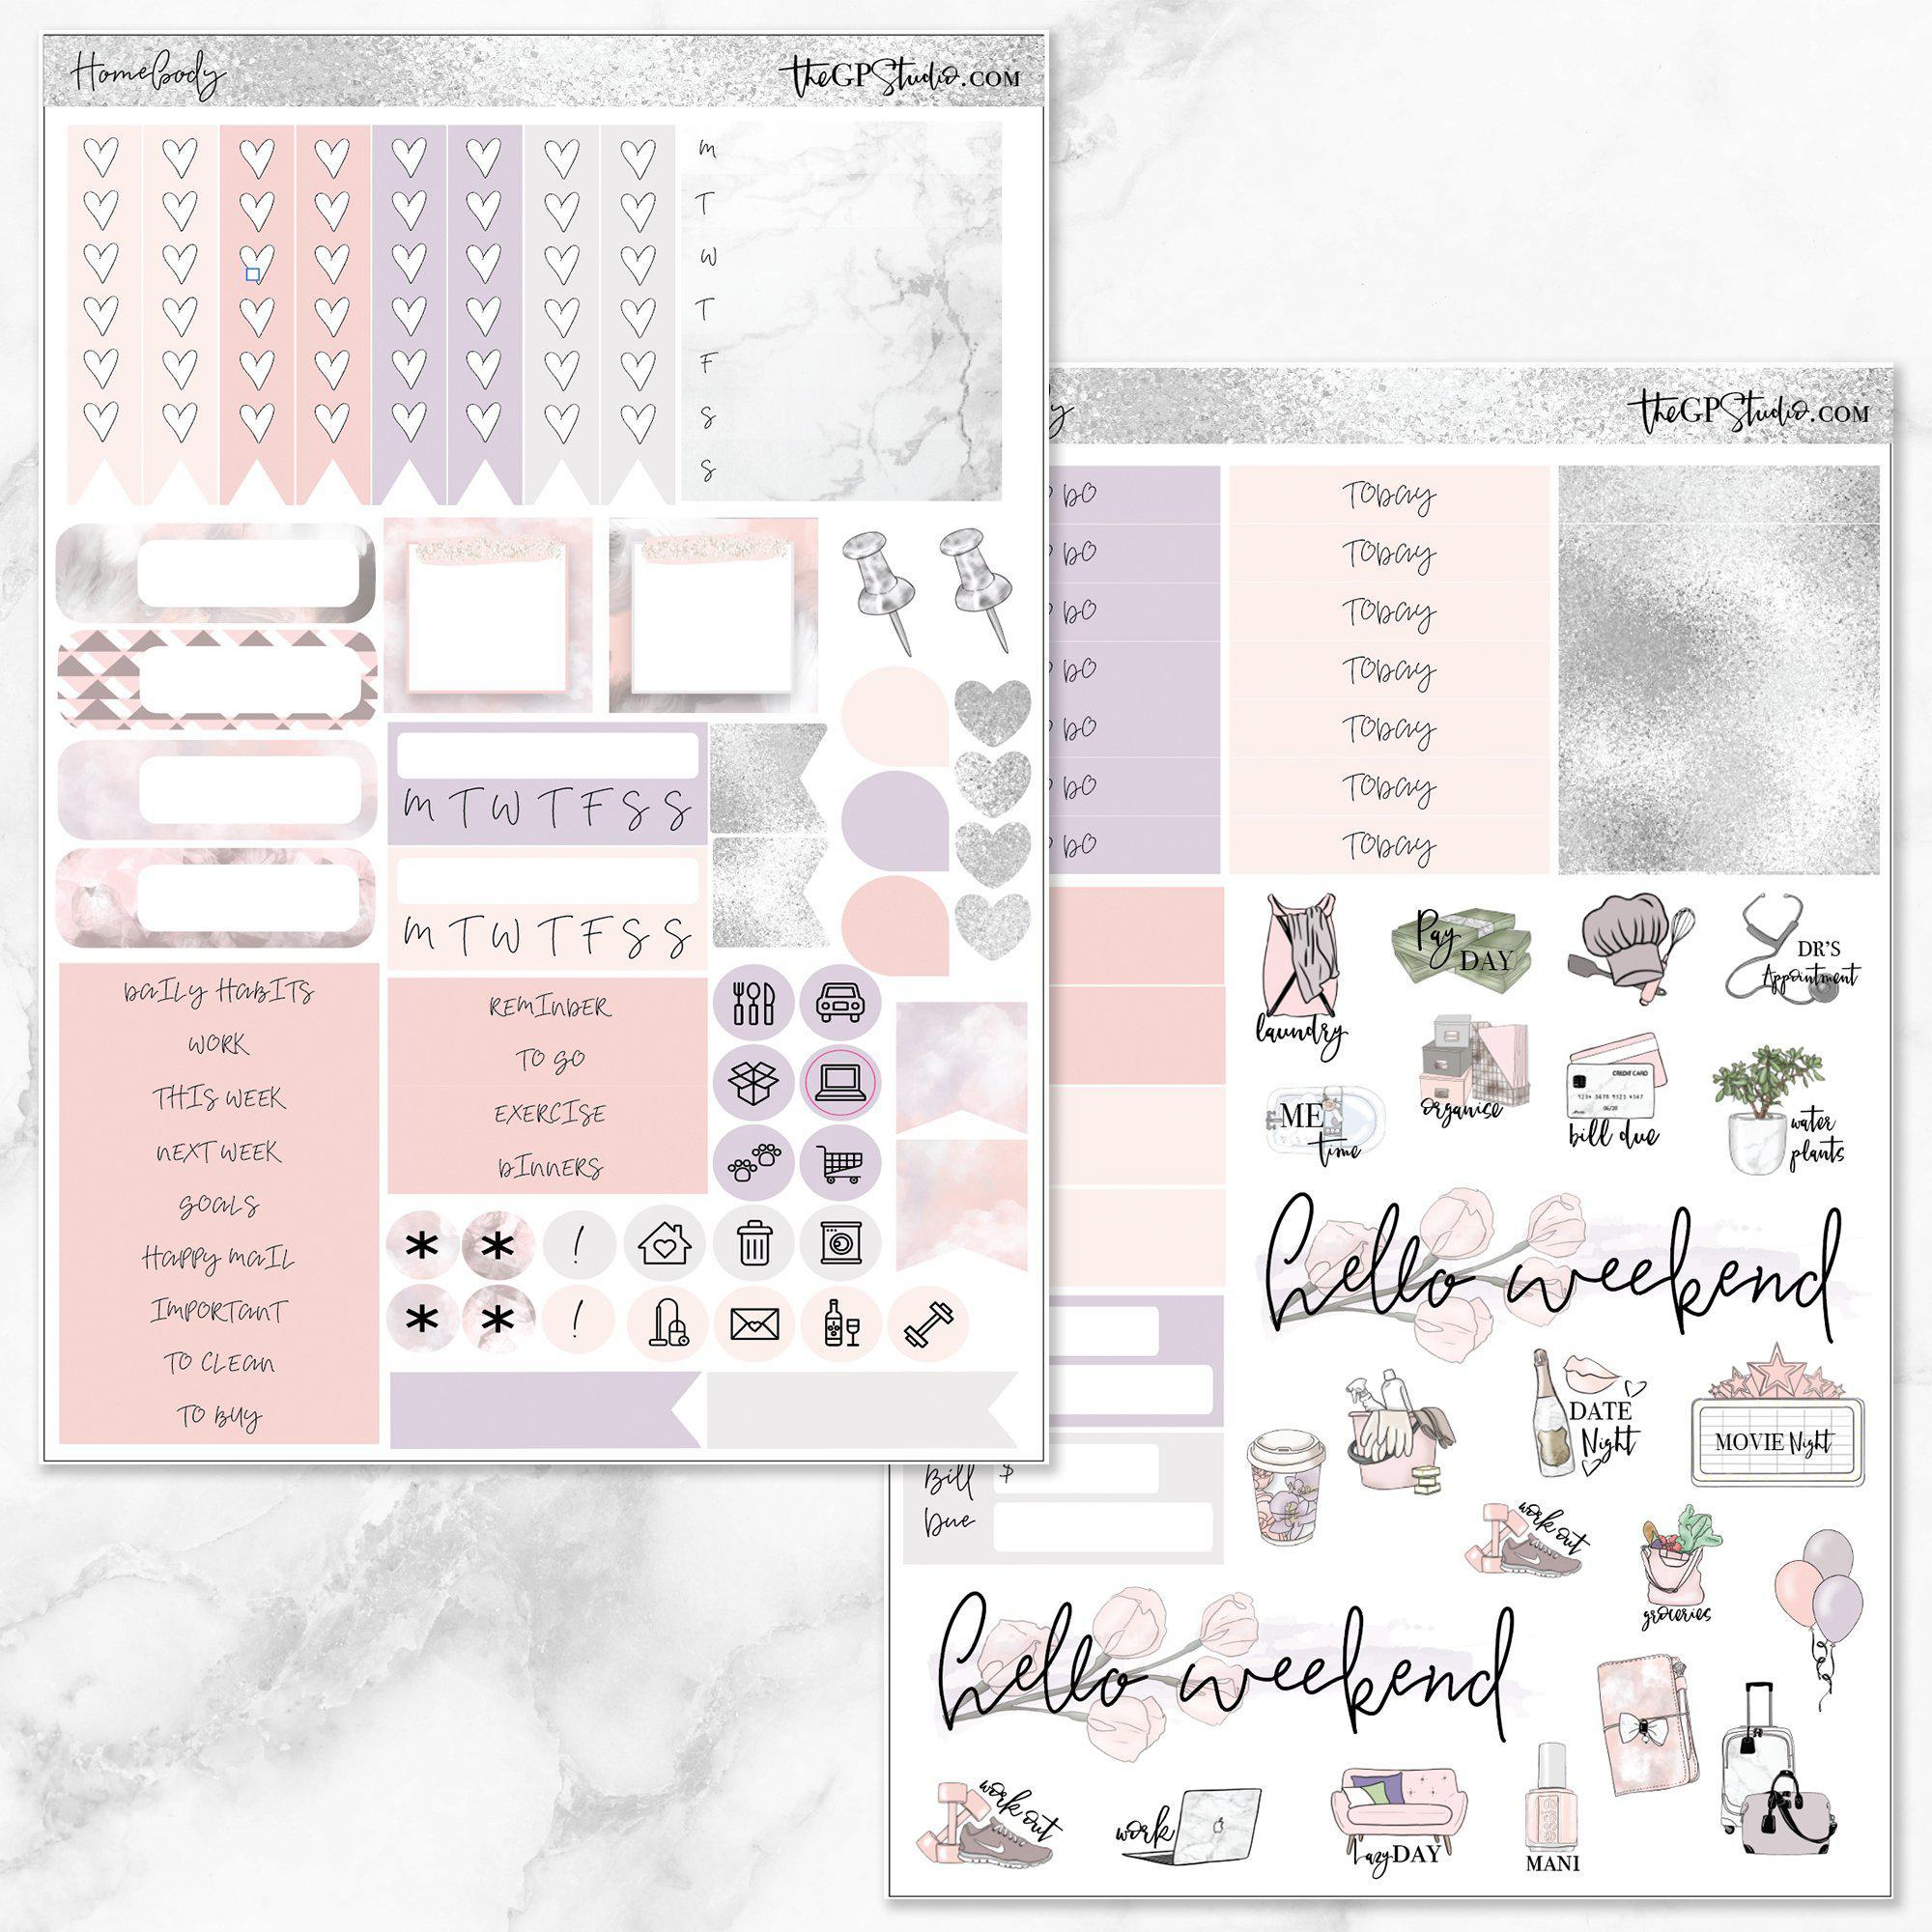 HOMEBODY Functional Planner Sticker Kit-The GP Studio